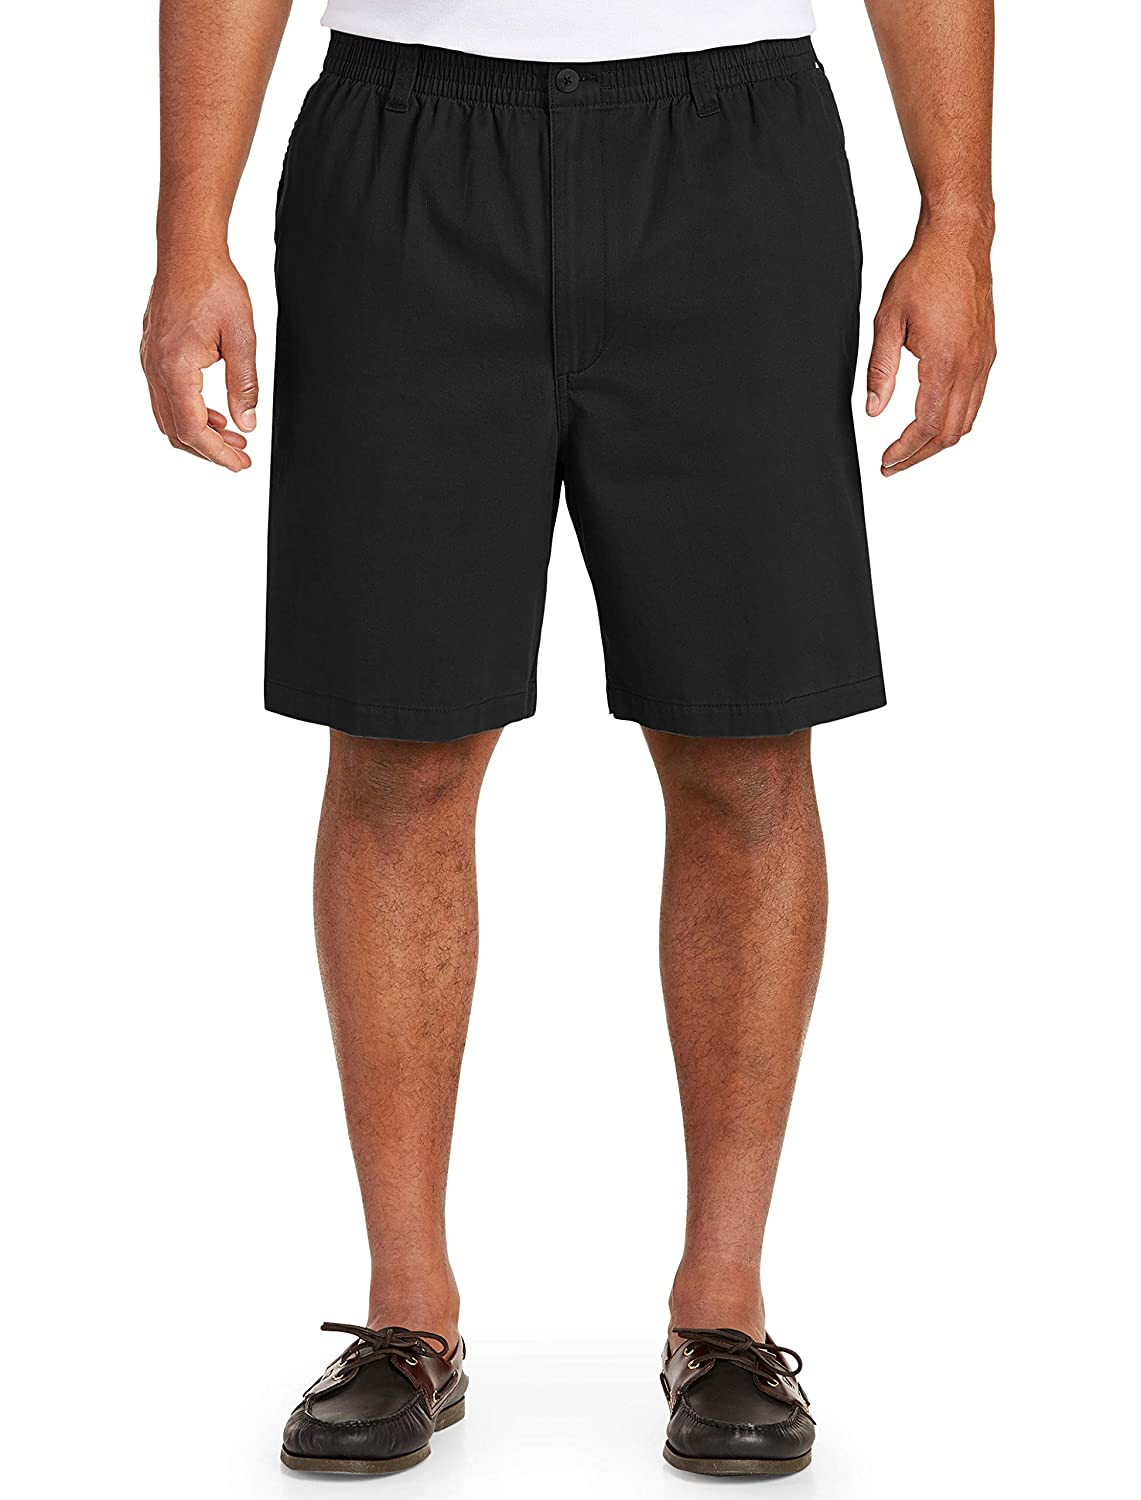 4X Harbor Bay by DXL Big and Tall Elastic-Waist Twill Shorts-Updated Fit Black